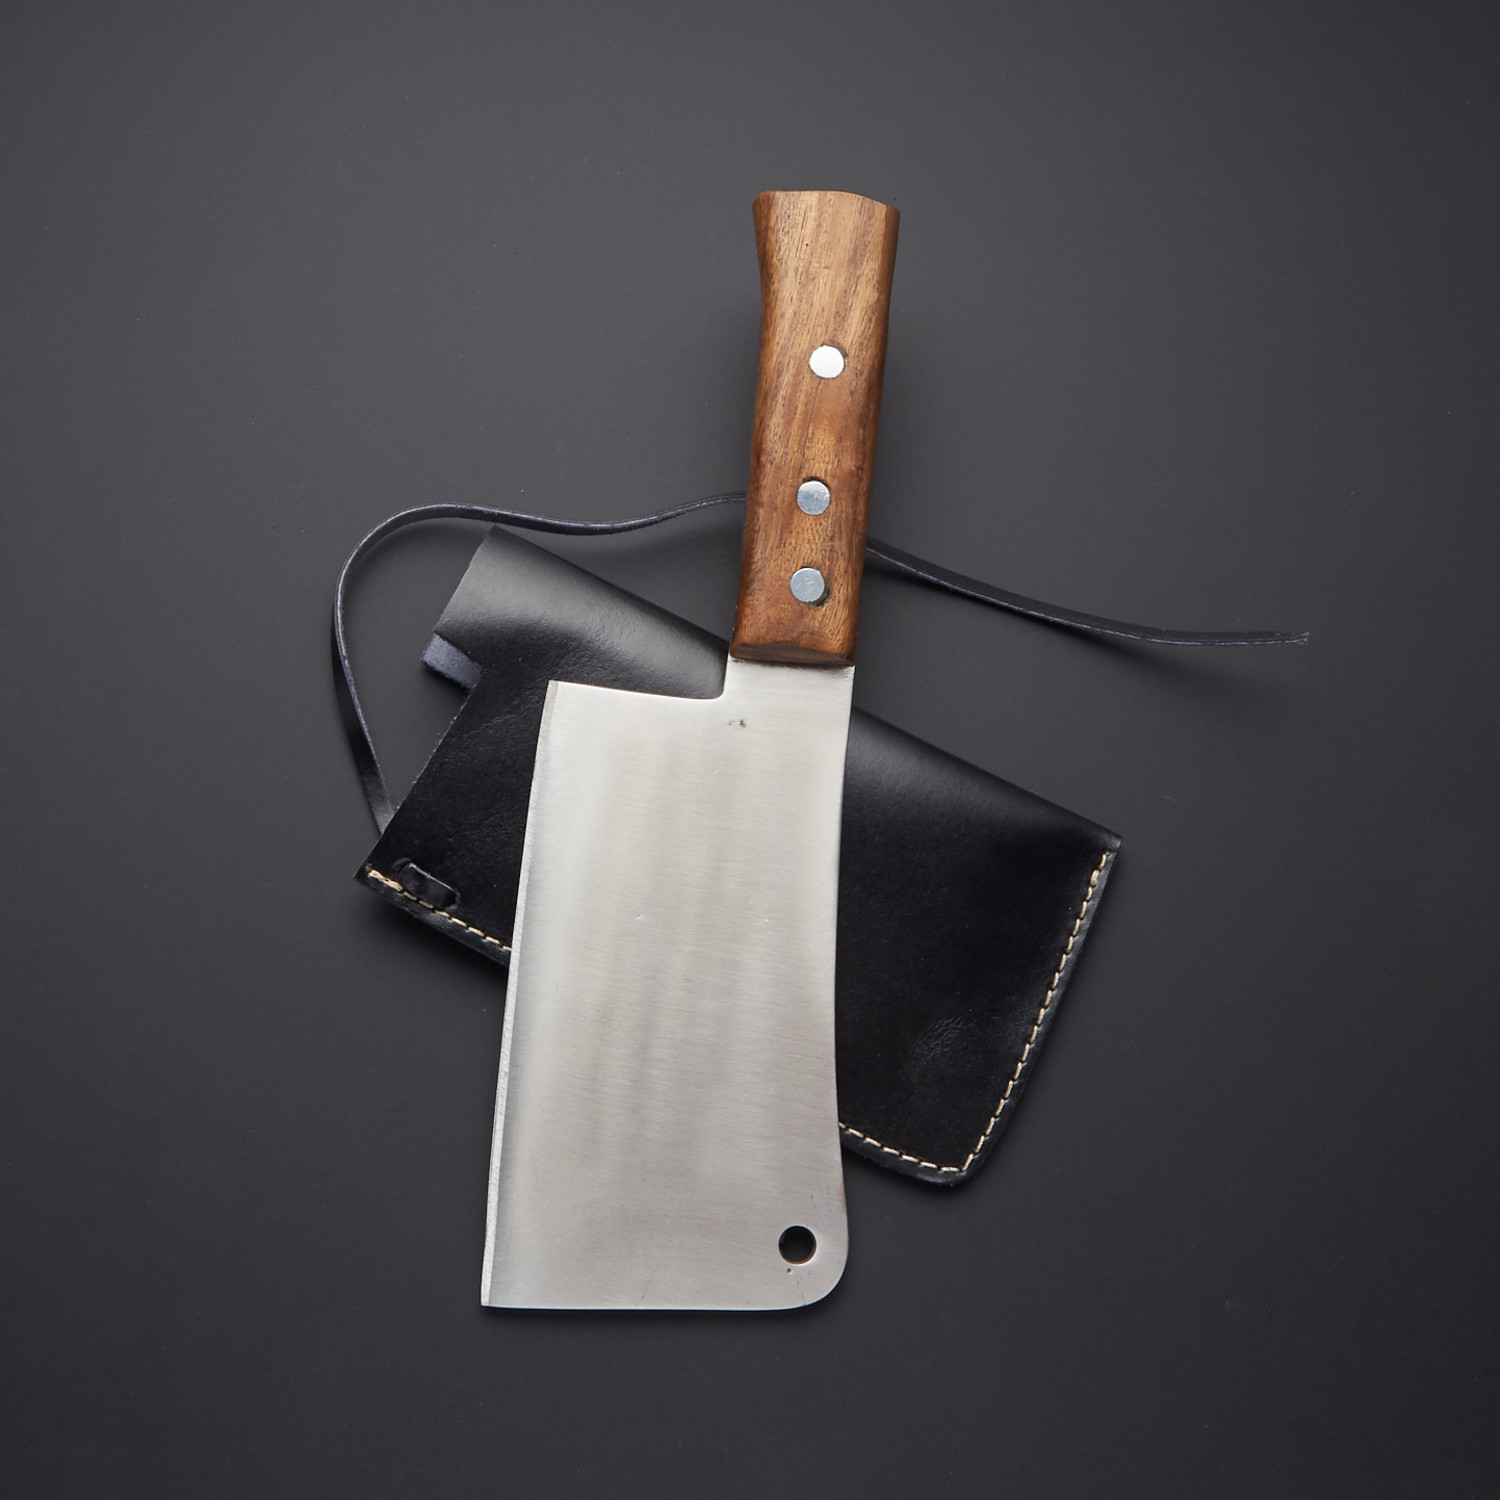 440c Stainless Steel Chef Cleaver The Blade Point